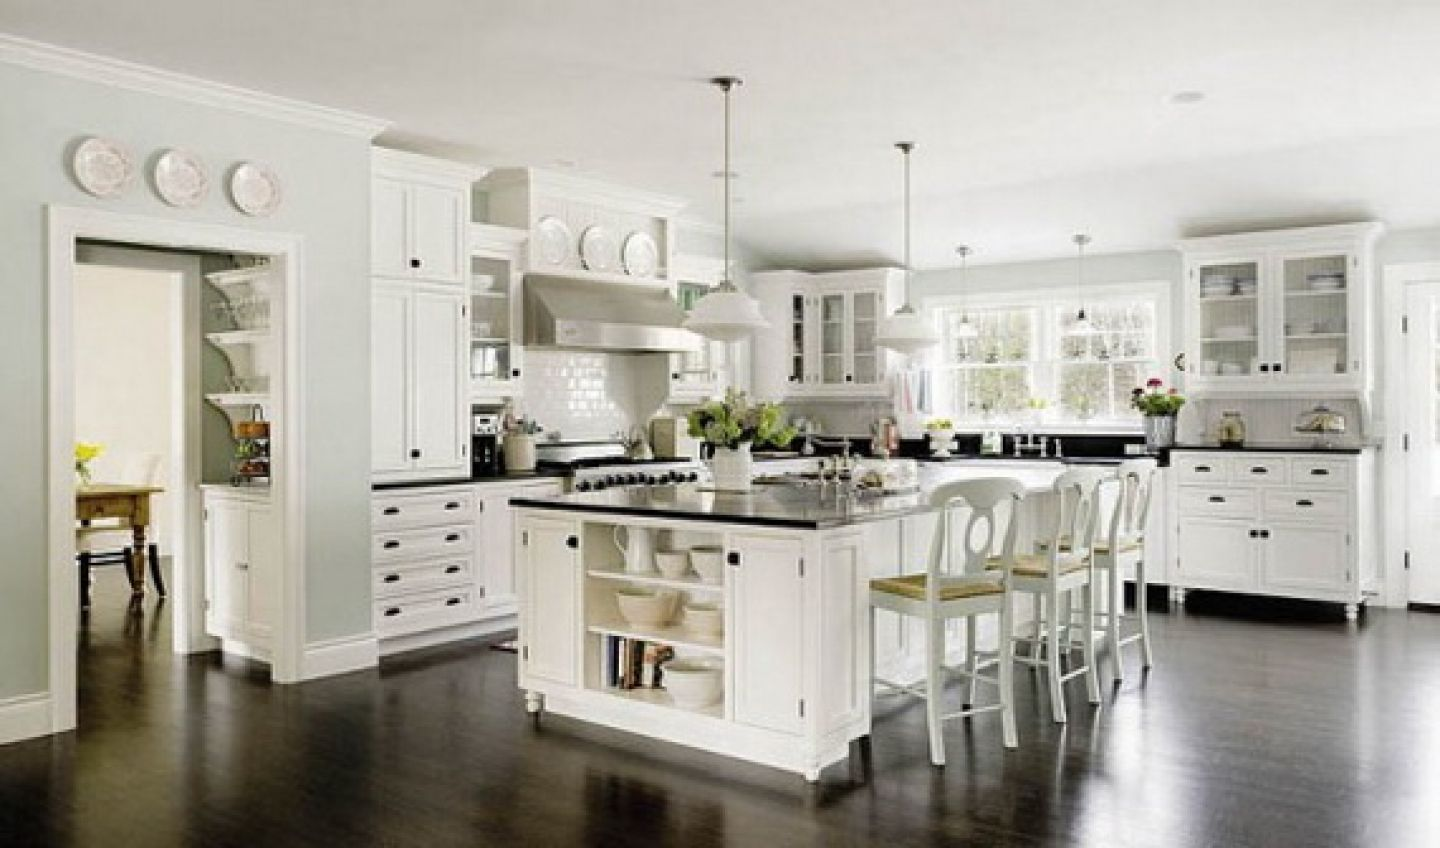 Famous The Hollow Bar Kitchen Component - Kitchen Cabinets | Ideas ...